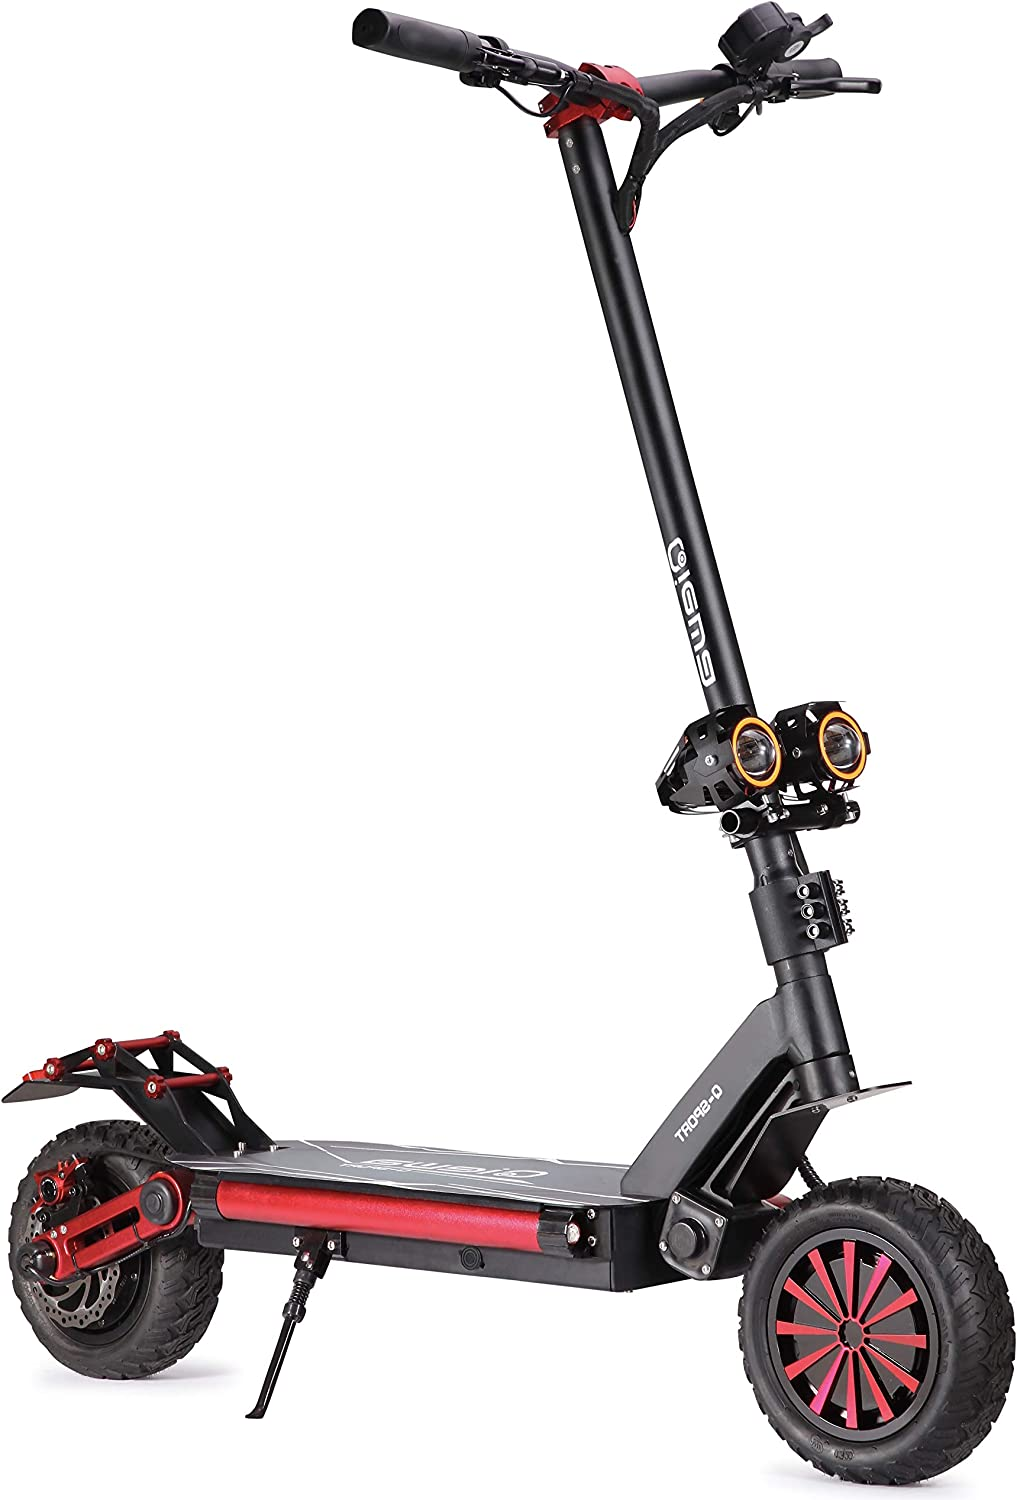 DOD Qiewa Q1SPORT Electric Scooter